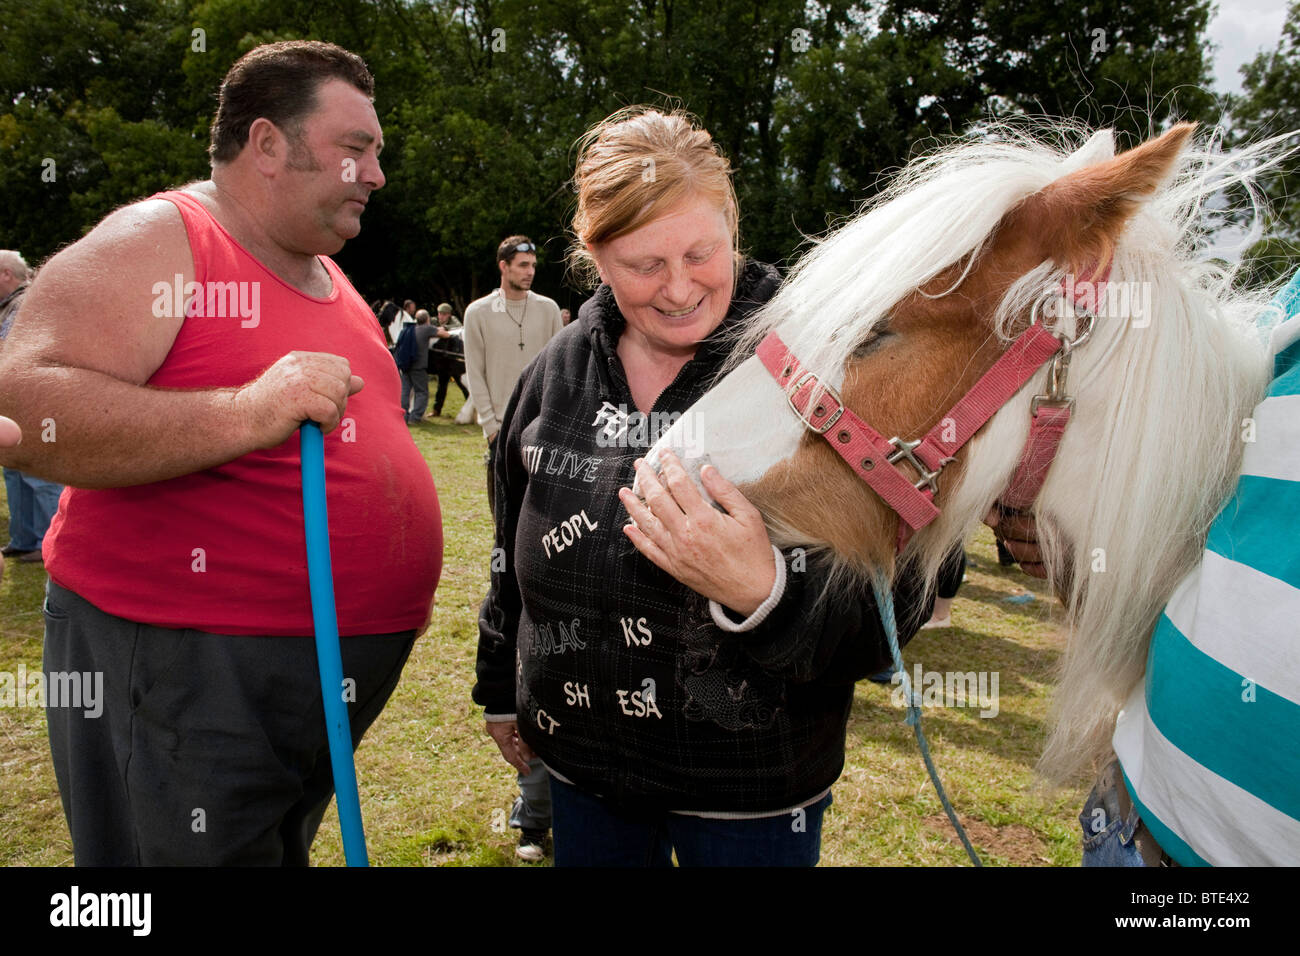 Horse dealer with a very large stomach looks admiringly at a woman holding his horse's head at Priddy Sheep - Stock Image